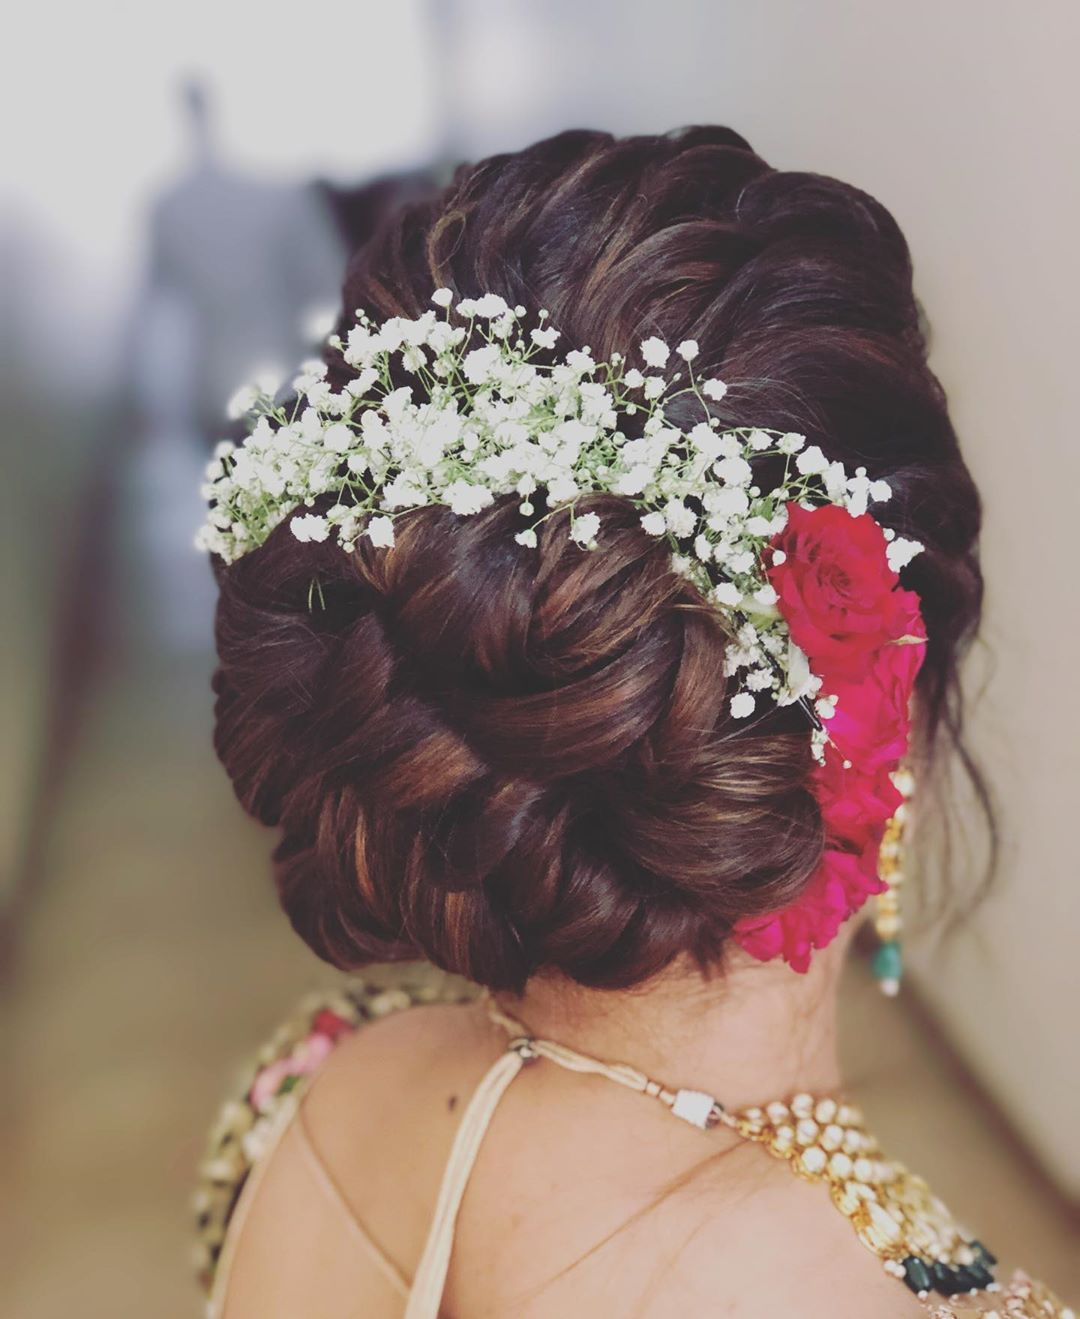 Gorgeous Romantic Messy Bun Hairstyle Bridal Reception Hairstyle By Mua Vejetha Anand For Swank Bridal Hair Buns Indian Bridal Hairstyles Messy Bun Hairstyles